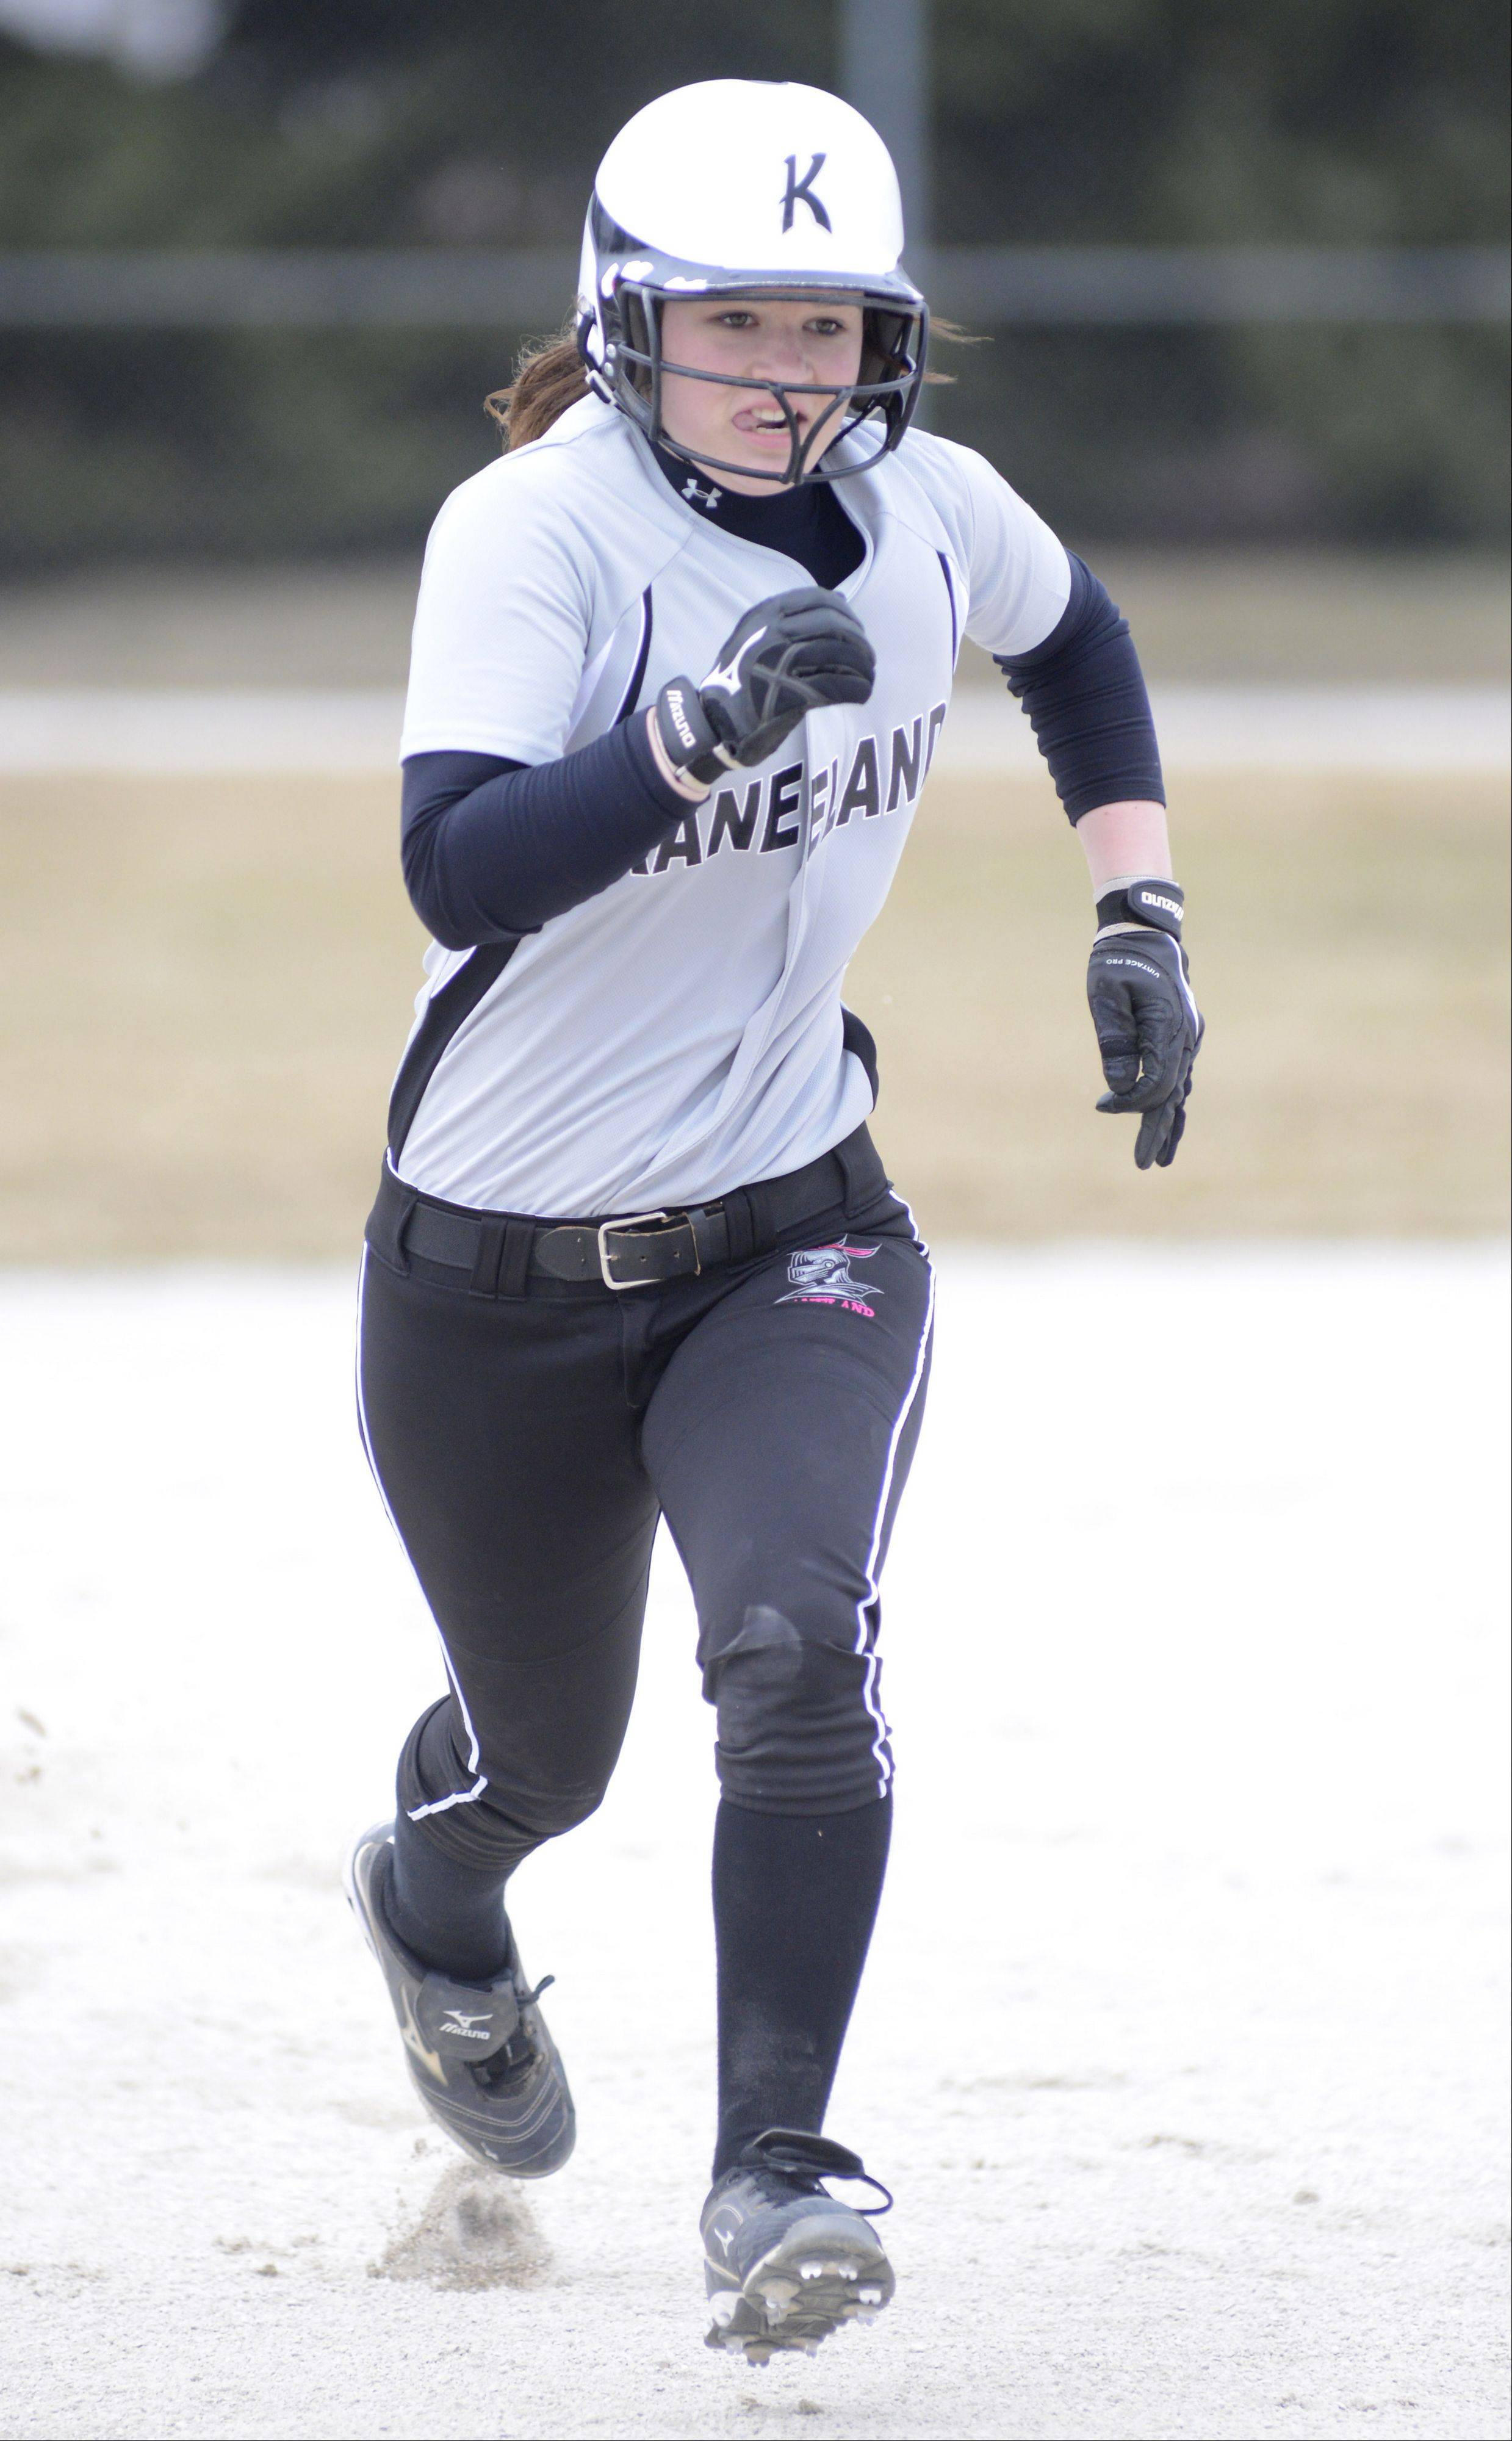 Kaneland's Allyson O'Herron heads for third base in the first inning on Saturday, April 6.